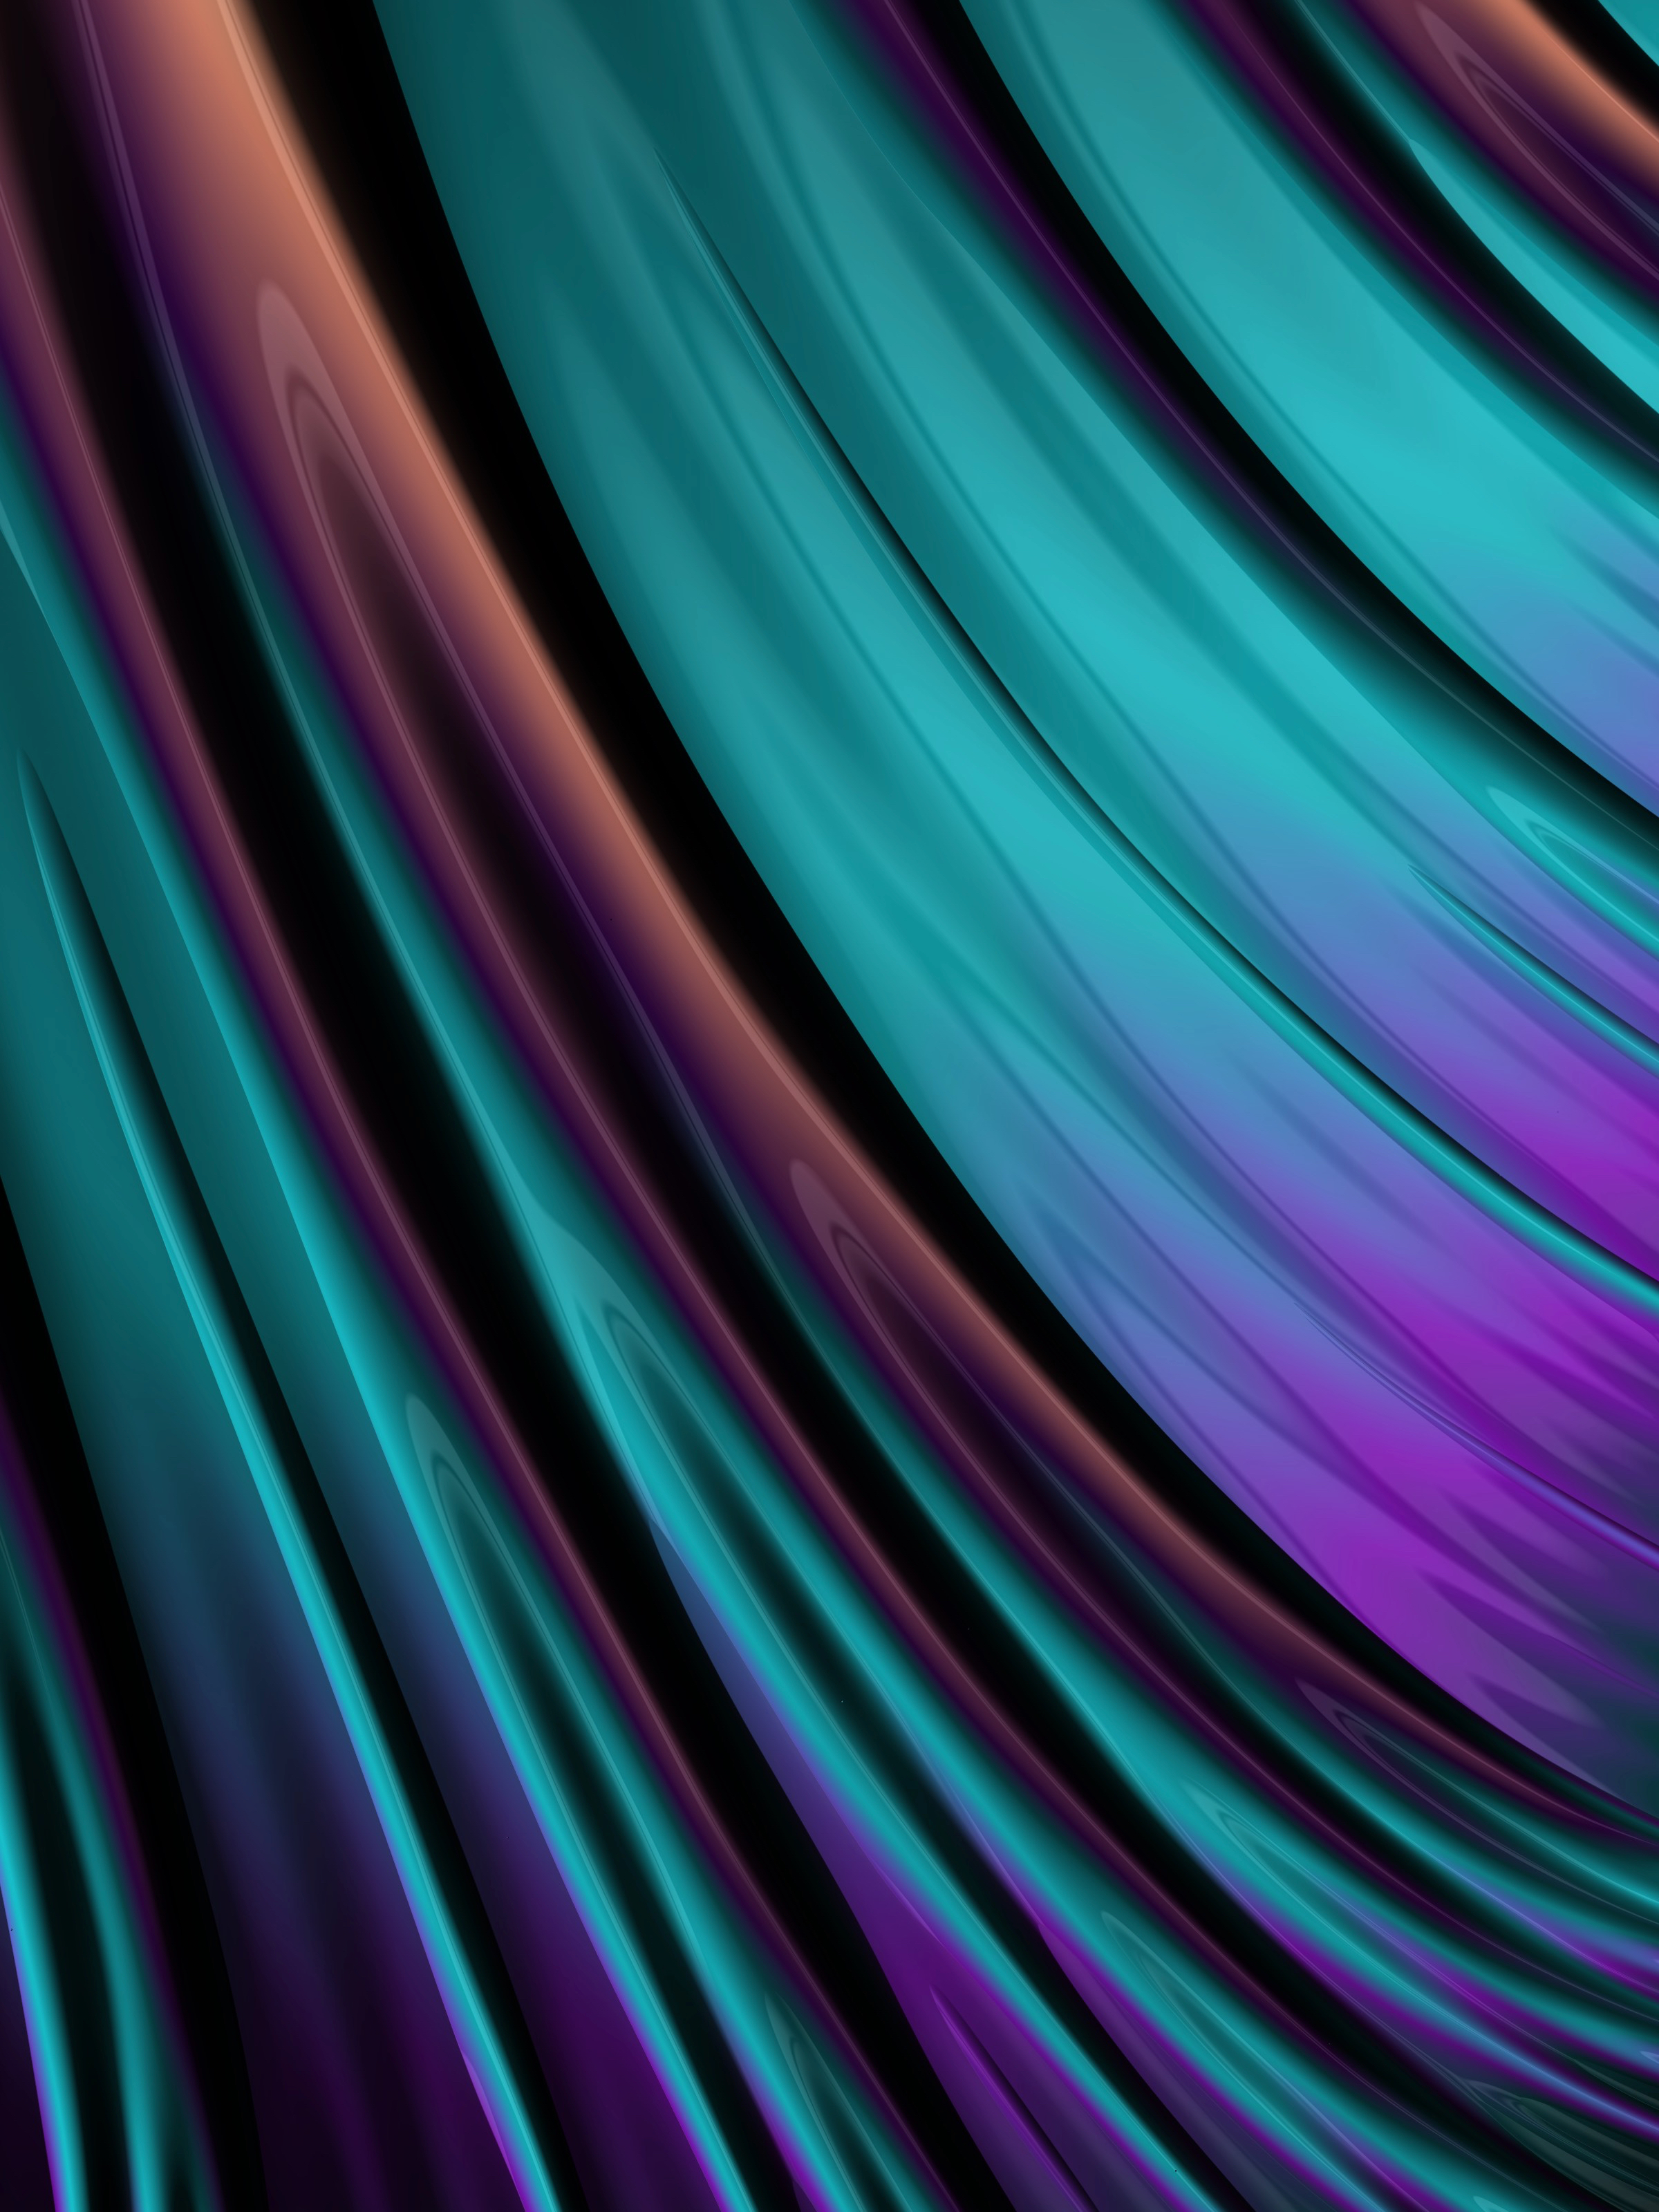 142071 download wallpaper Abstract, Gloss, Glossy, Volume, Wavy, Waves screensavers and pictures for free